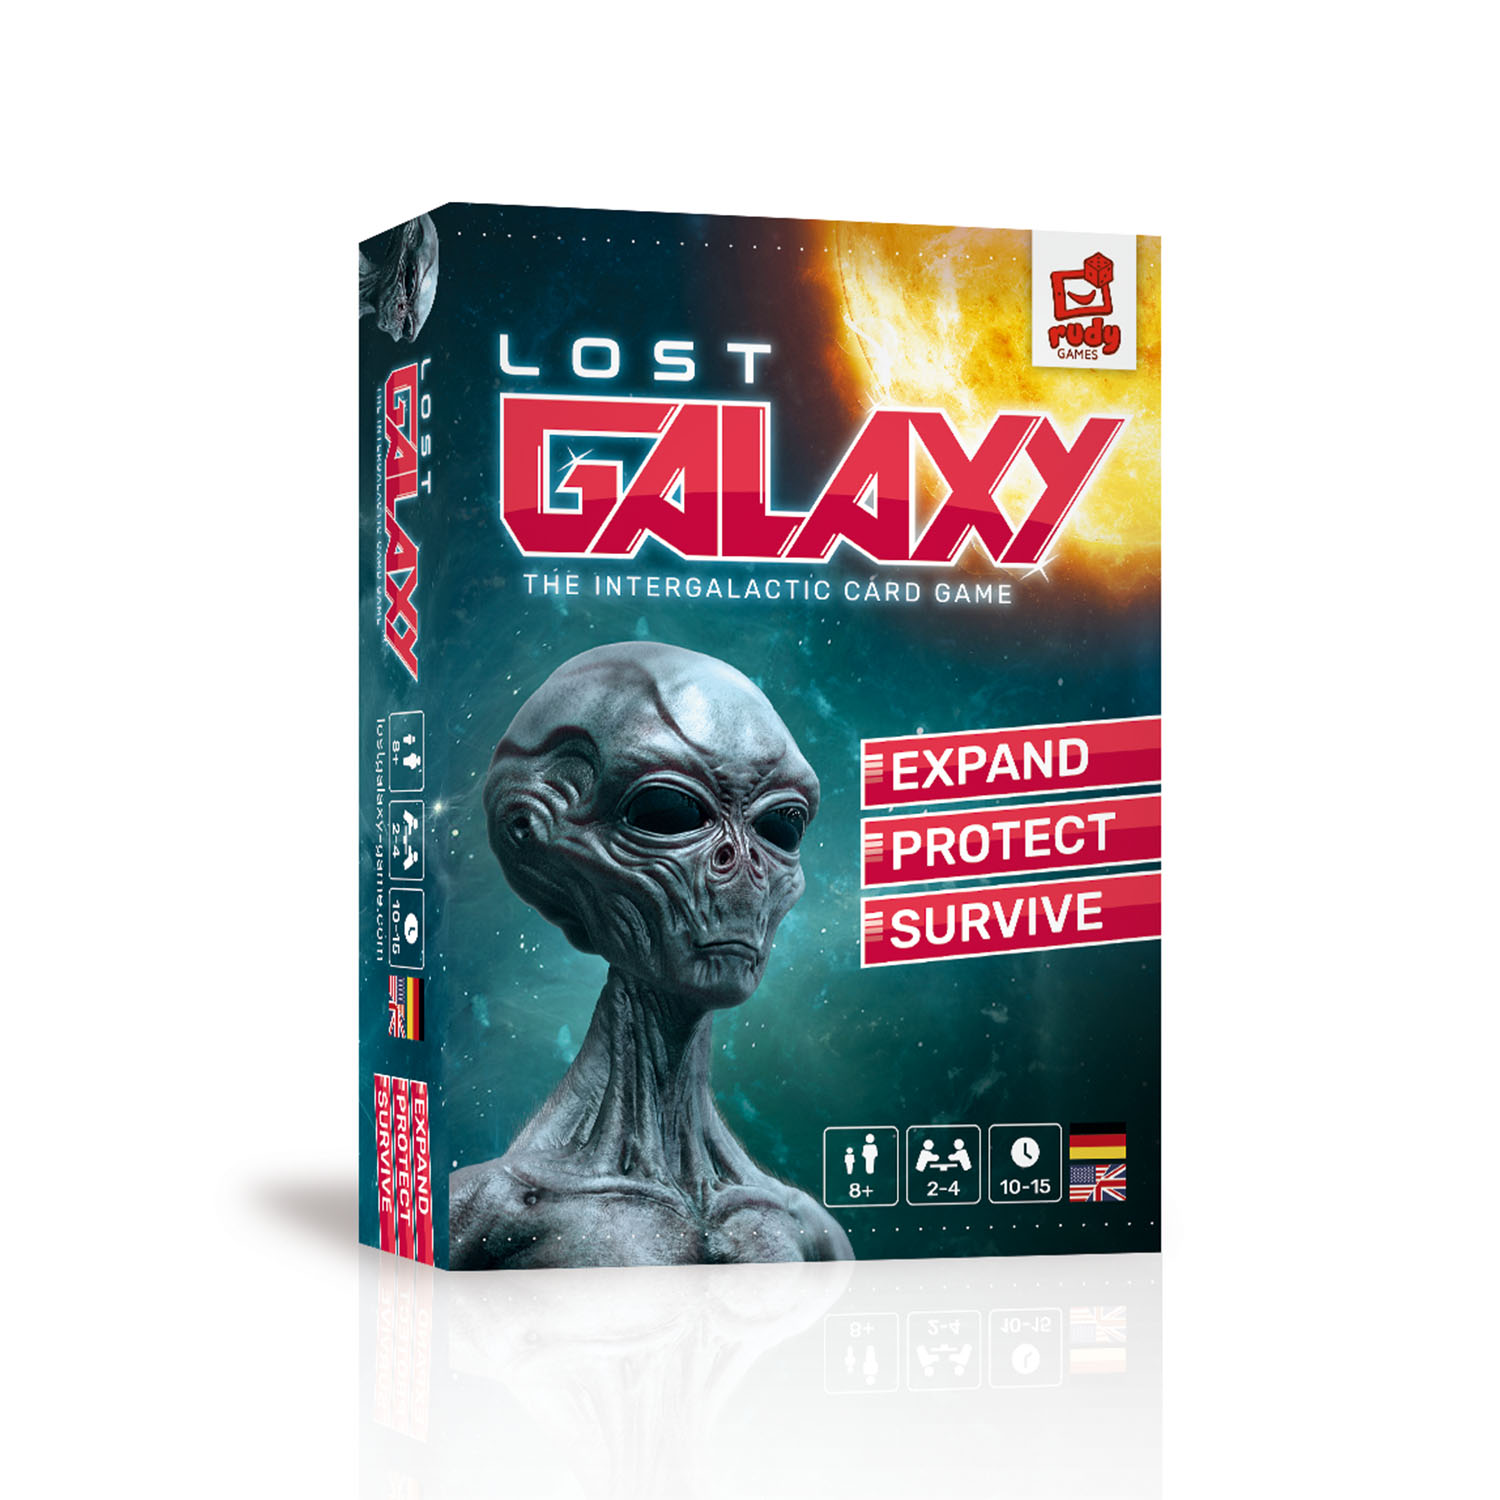 Lost Galaxy Box